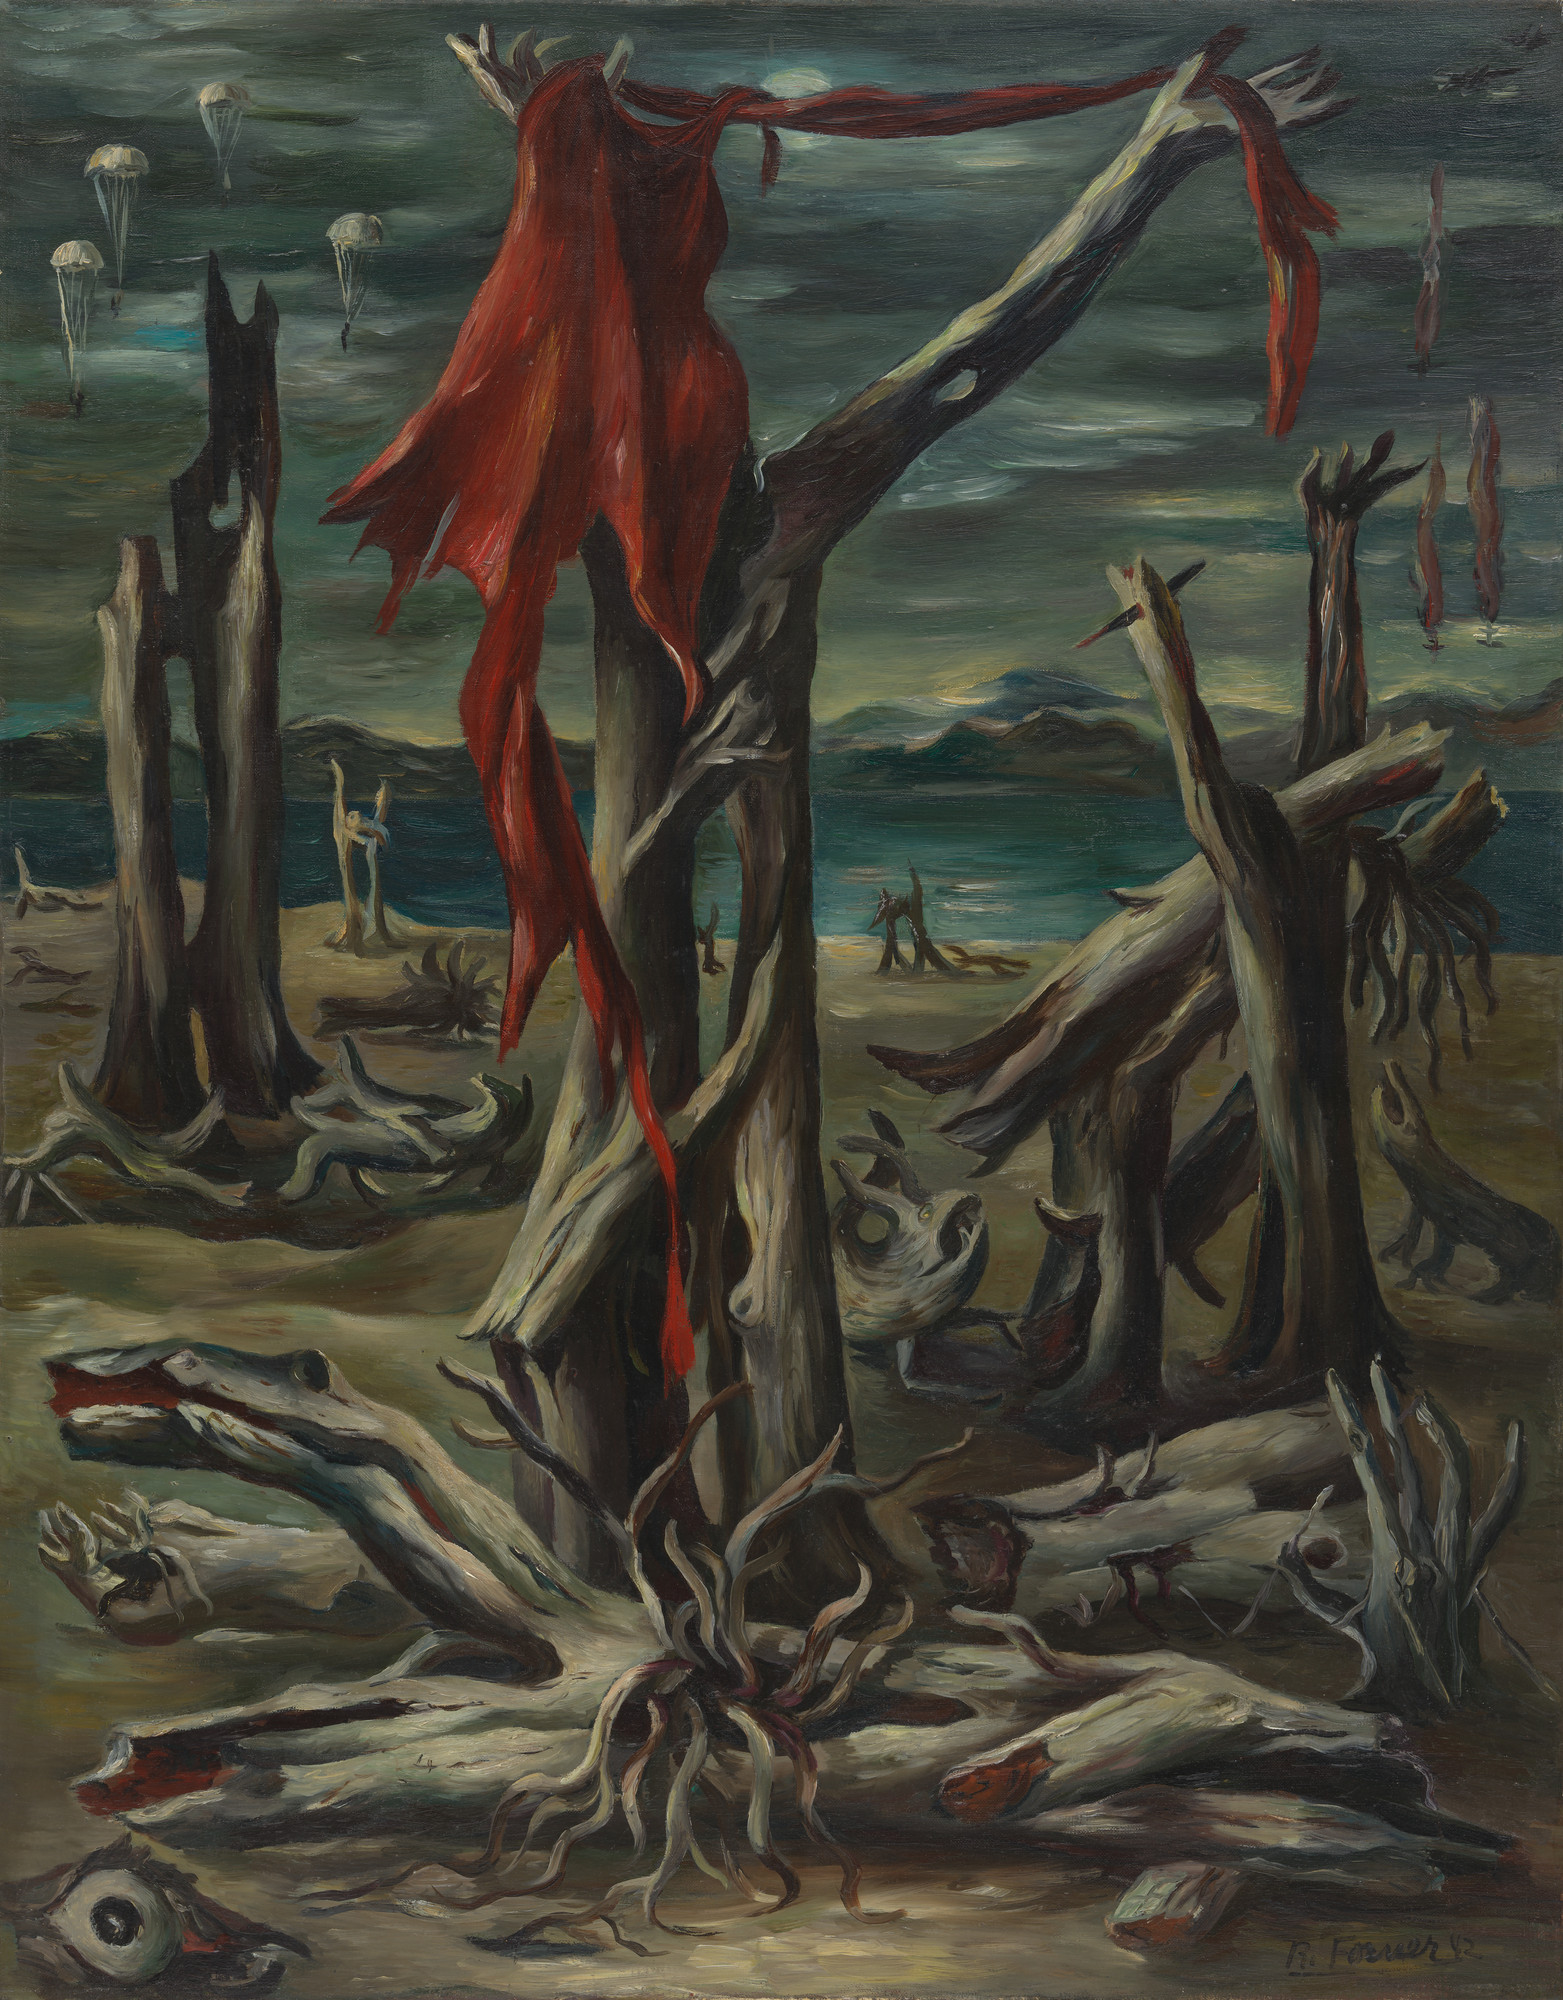 Raquel Forner. Desolation. 1942